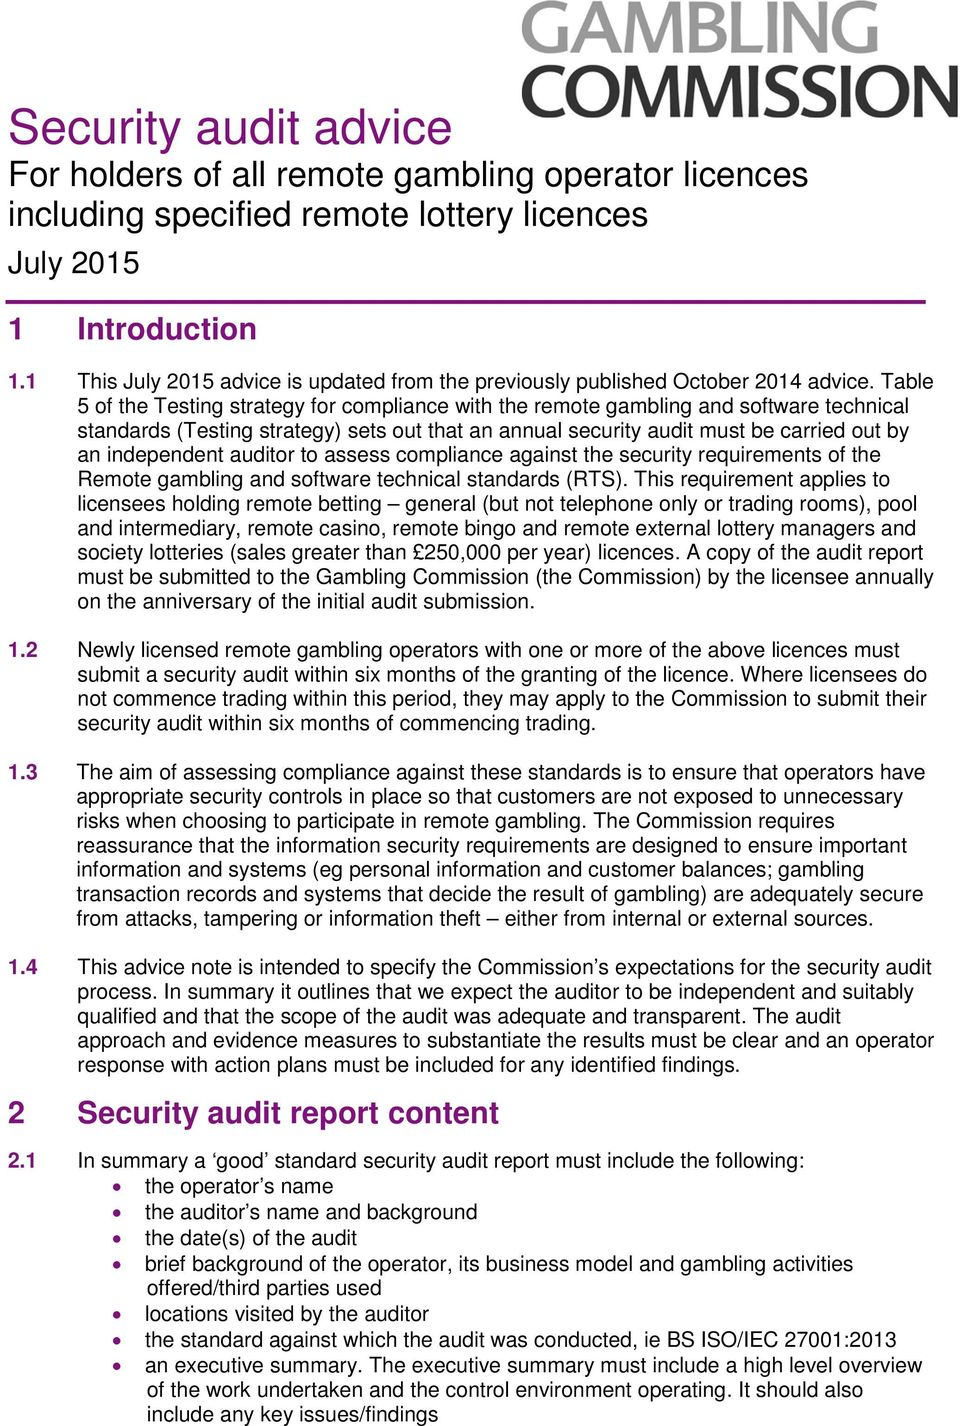 Table 5 of the Testing strategy for compliance with the remote gambling and software technical standards (Testing strategy) sets out that an annual security audit must be carried out by an